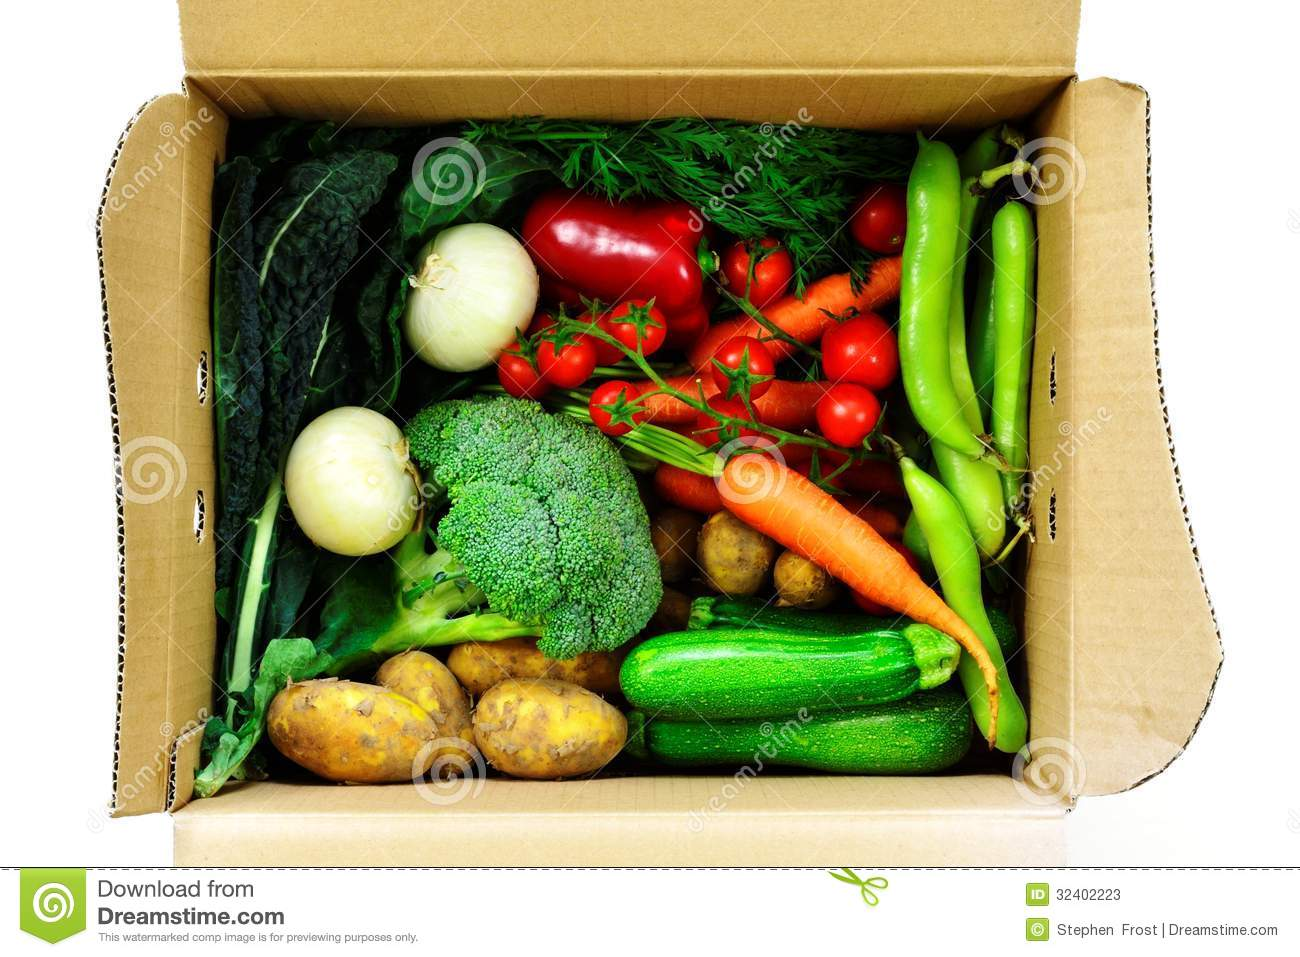 Clipart Pictures Tomatoes Vegetable Selection In Box Stock Photos Image 32402223